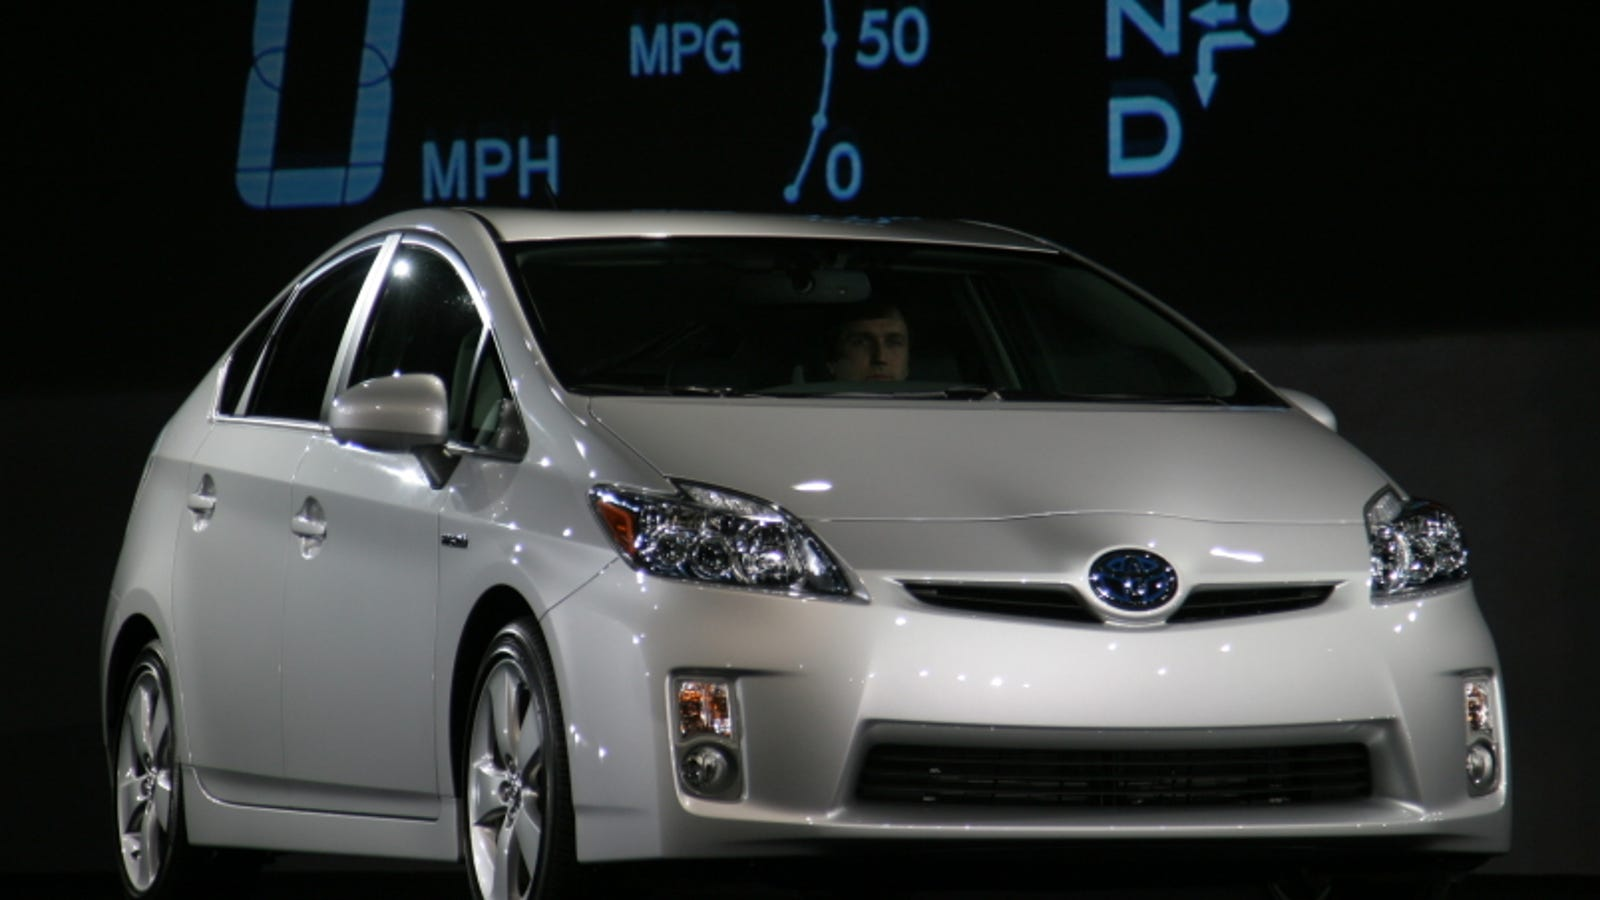 2010 Toyota Prius: At 50 MPG, Officially Highest-Mileage